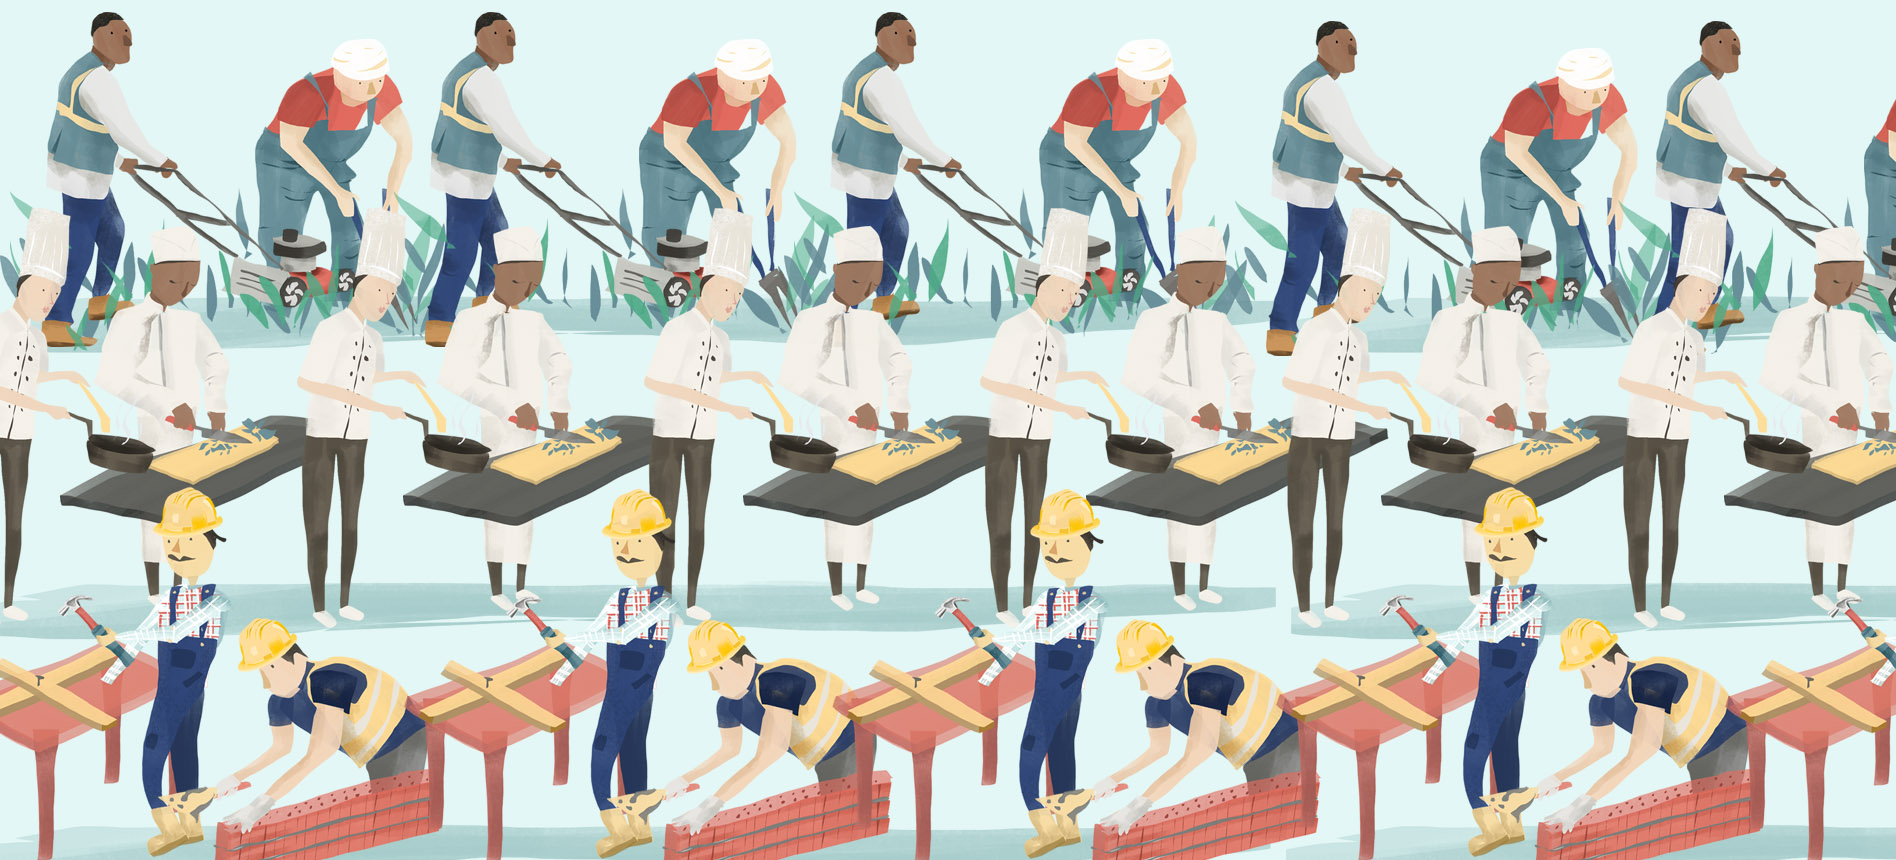 An illustration showing workers working overtime